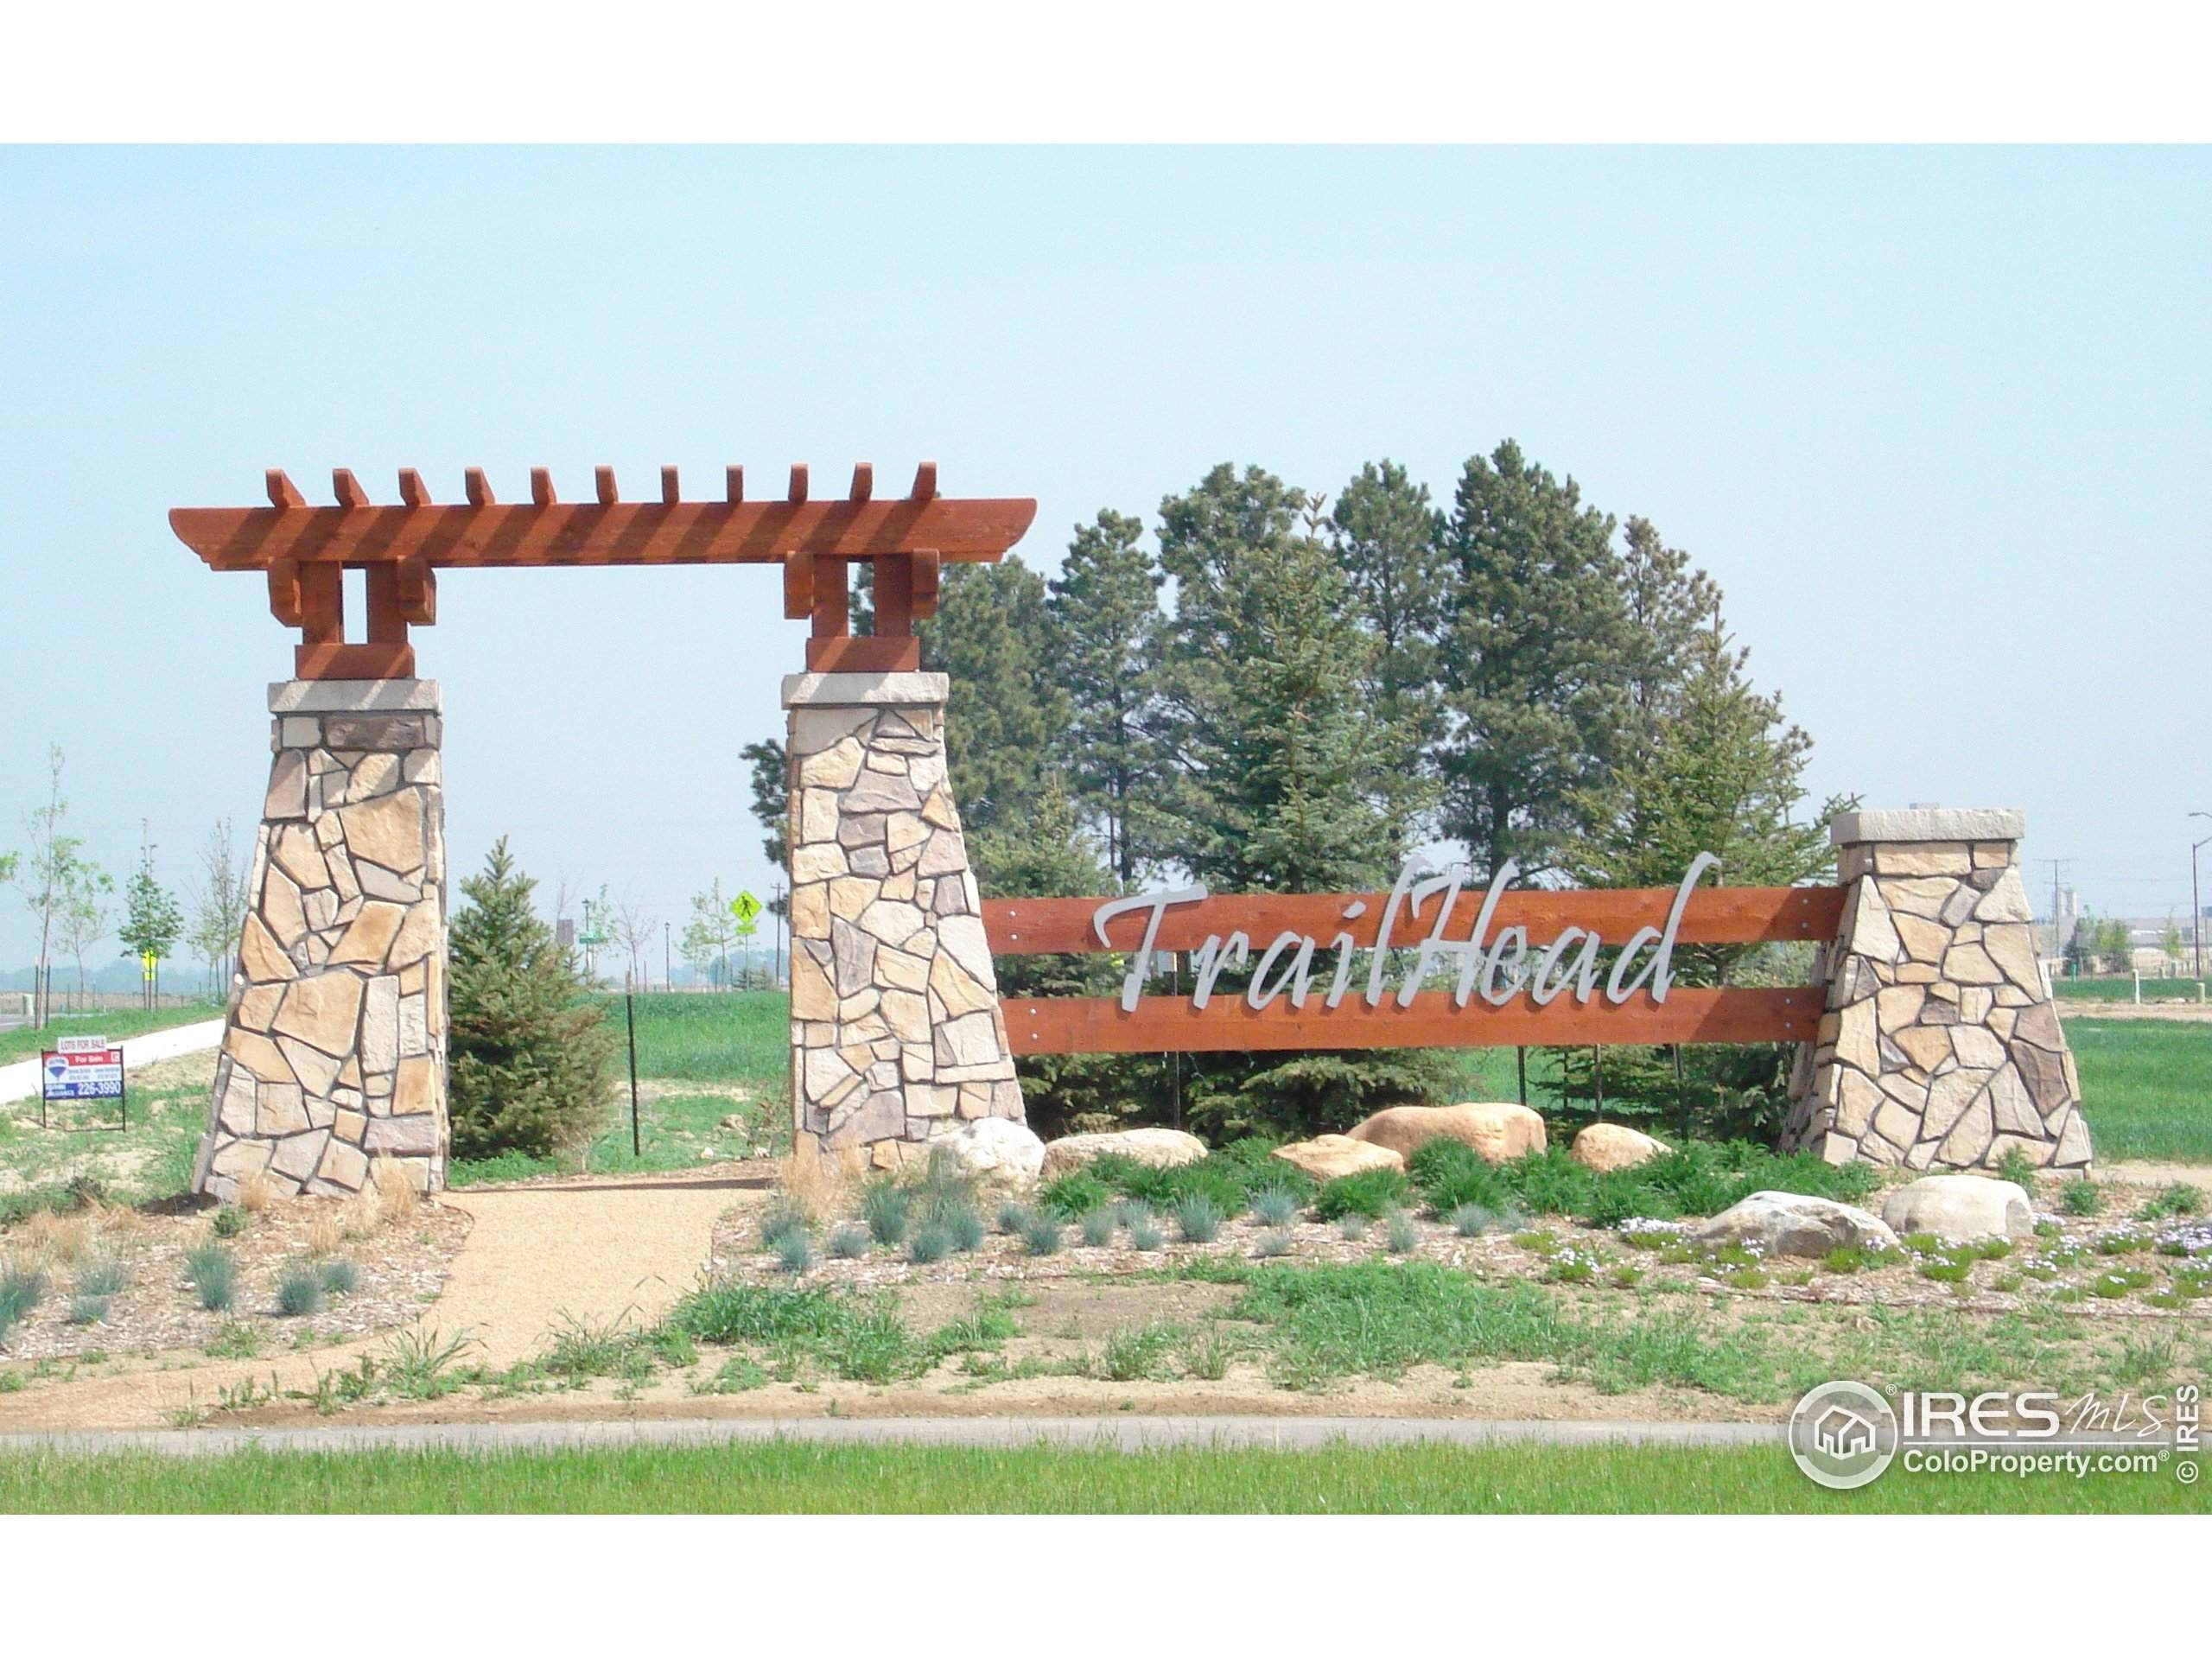 341 1st St #2, Mead, CO 80542 (MLS #913688) :: Colorado Home Finder Realty